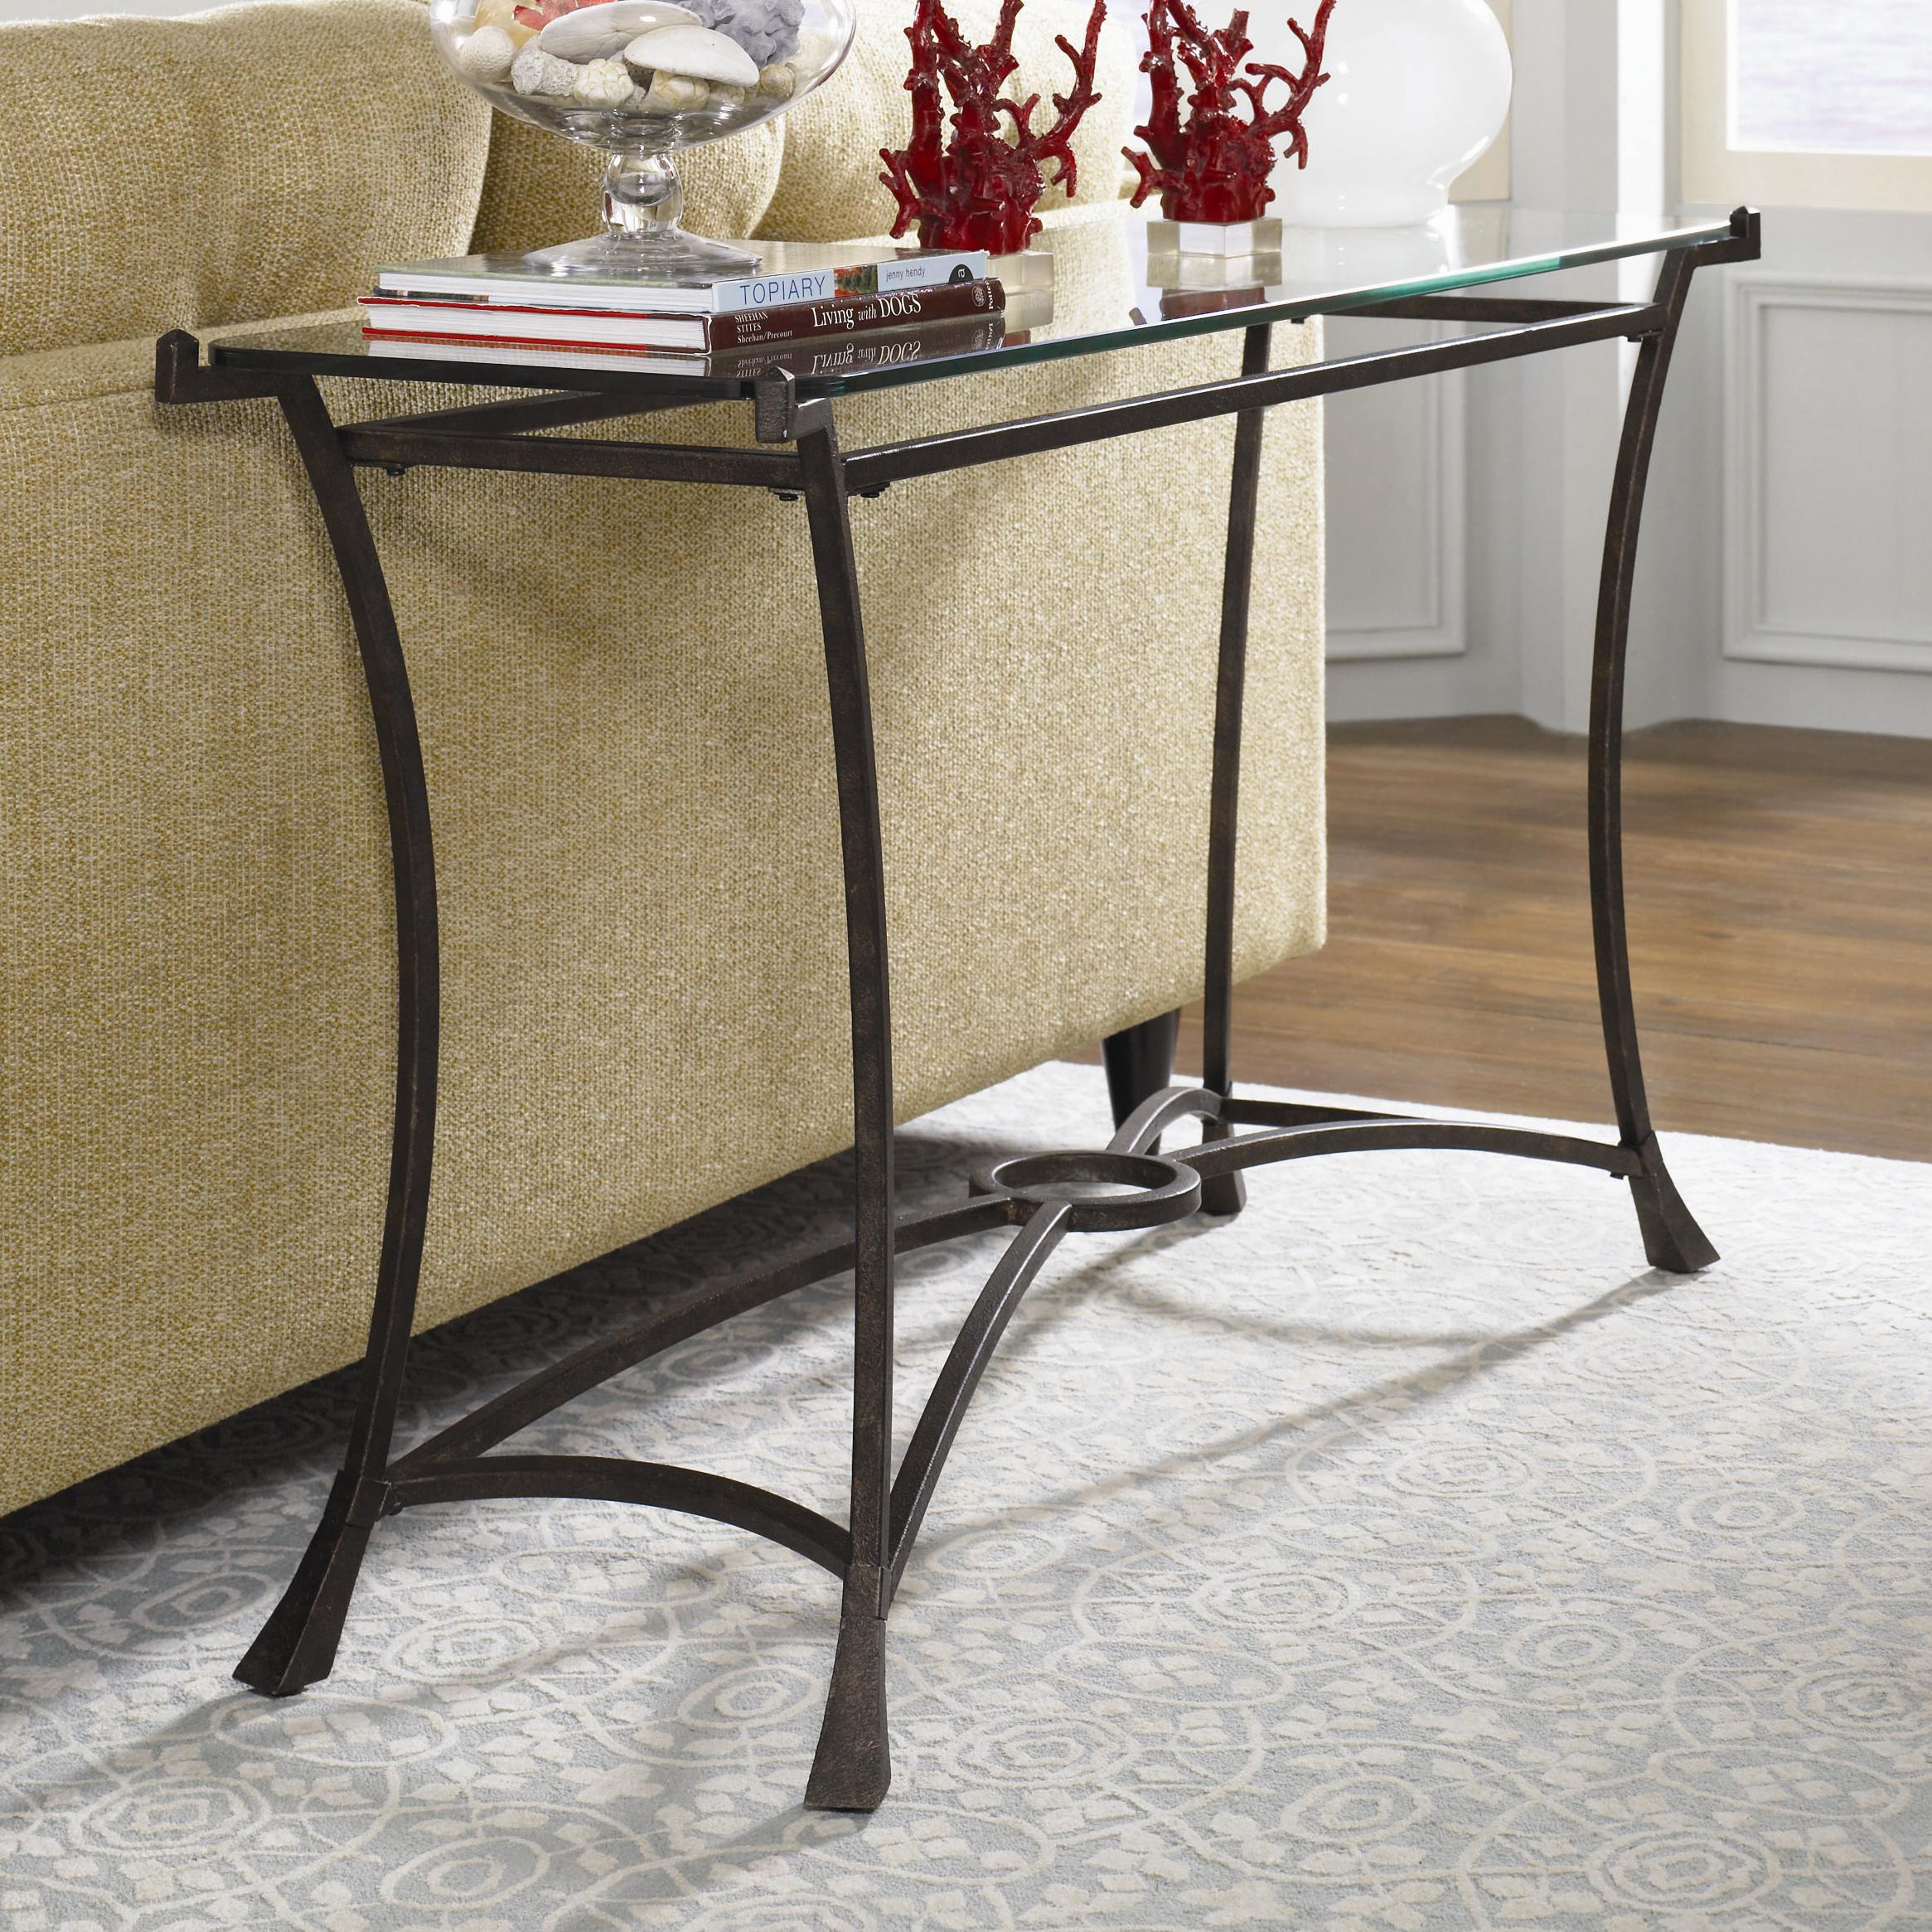 Metal Glass End Tables Sutton Contemporary Metal Sofa Table With Glass Top By Hammary At Darvin Furniture